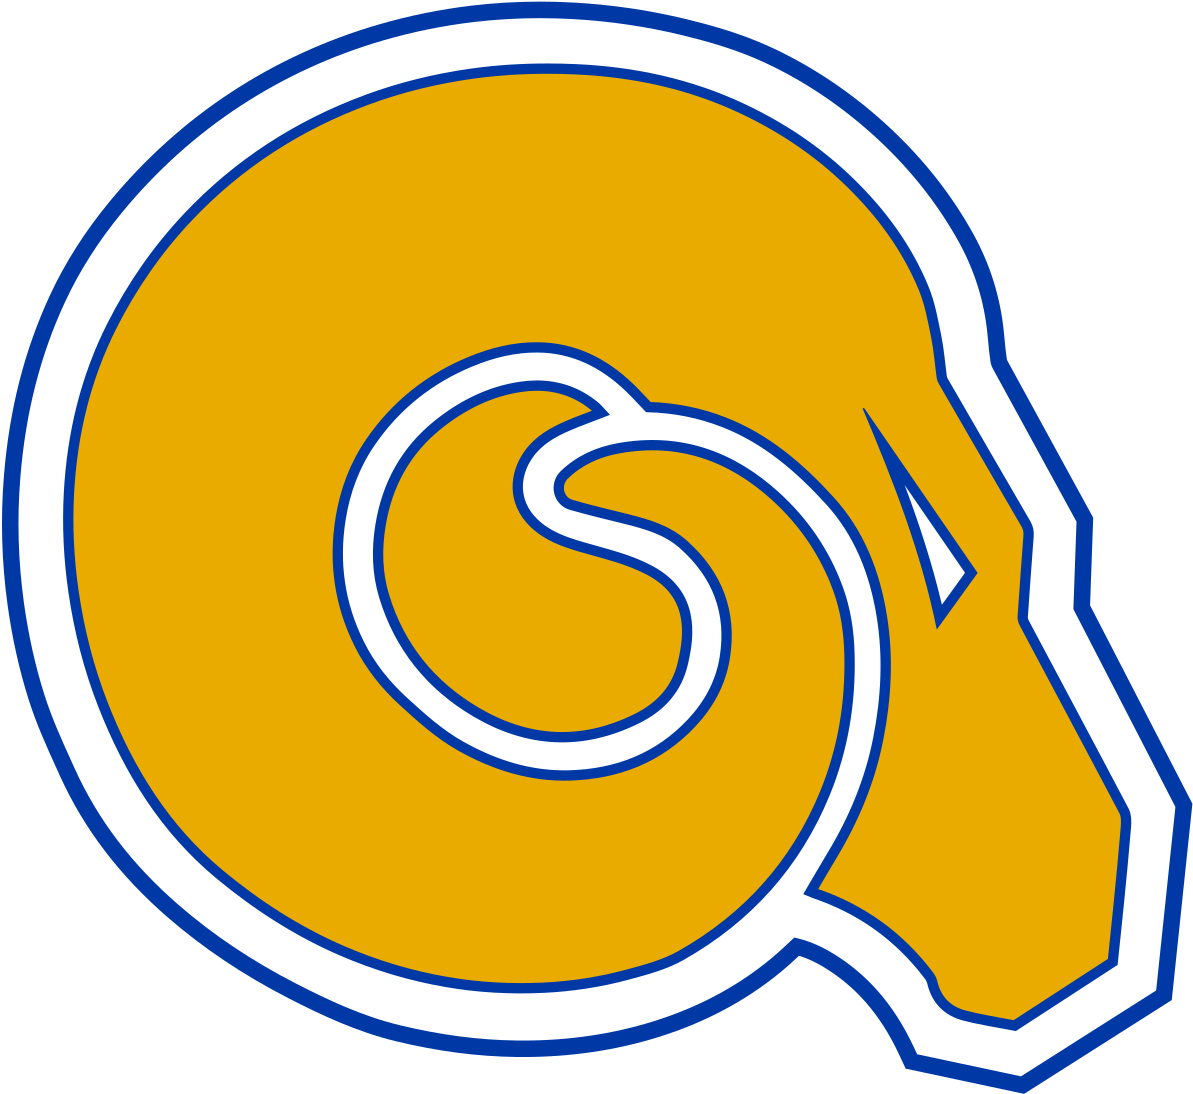 Download Albany State Golden Rams - Albany State Athletics Logo Clipart Png Download - PikPng